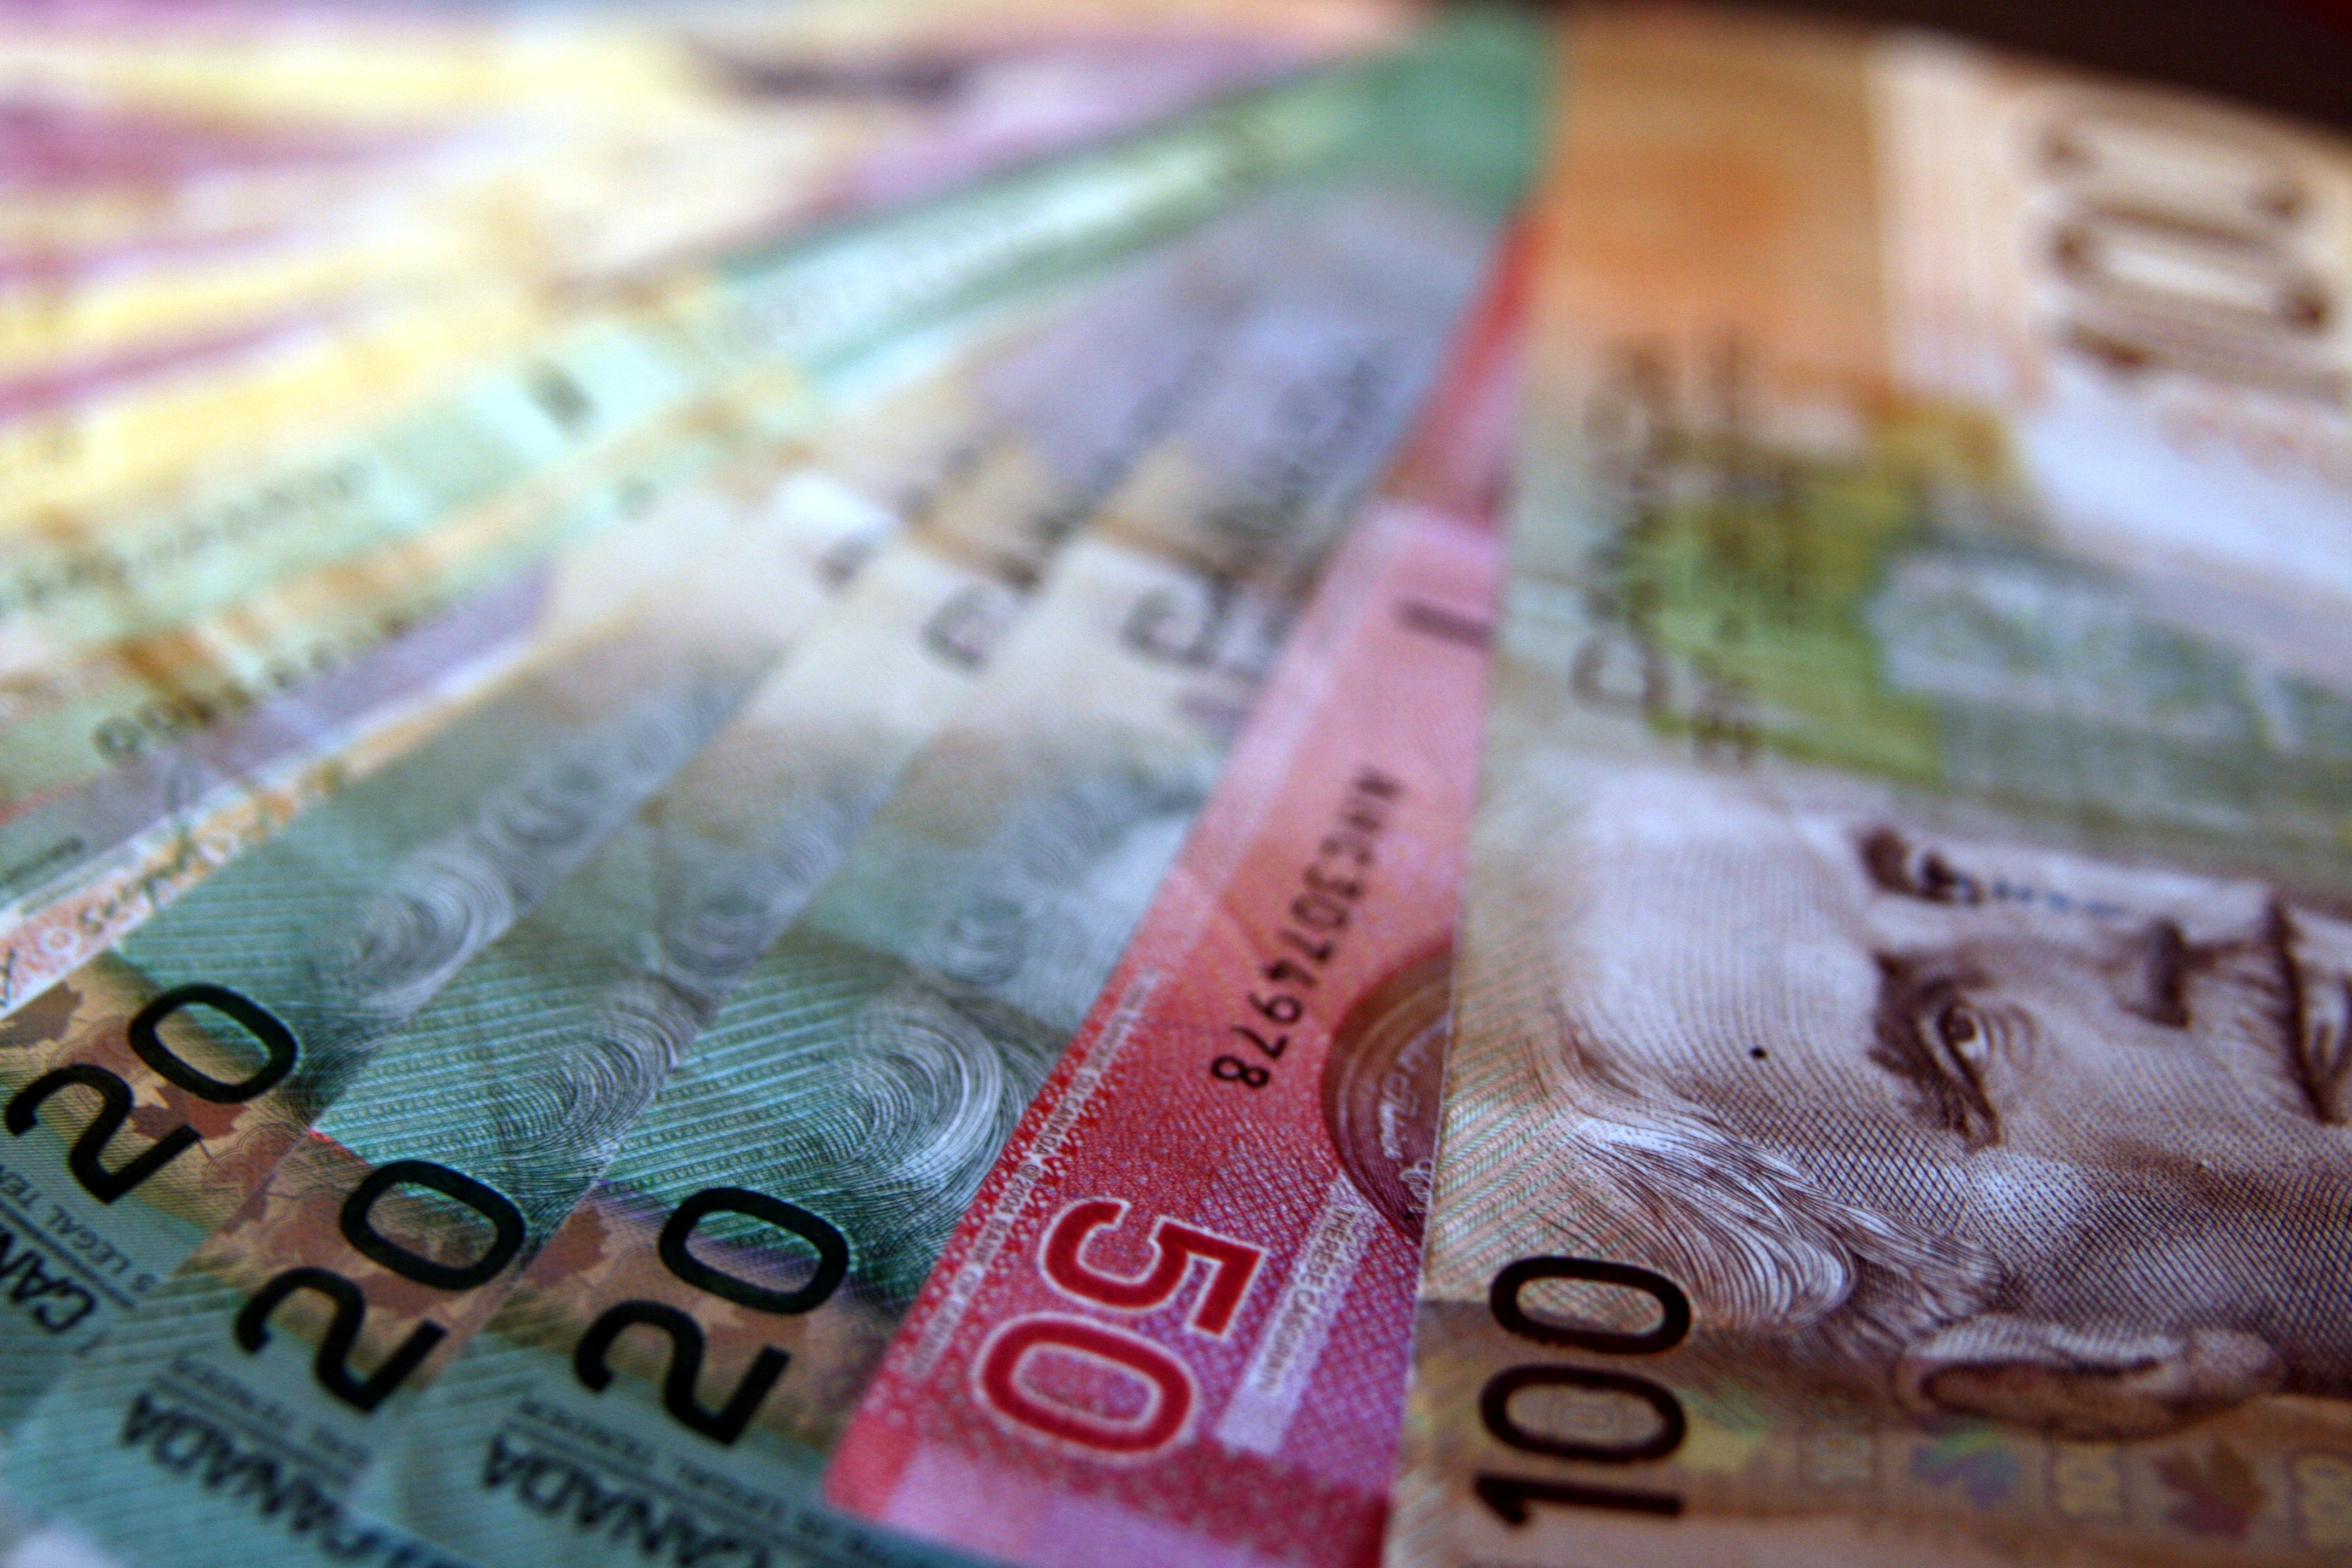 Photo by Duckie Monster - Canadian Money Creative Commons Attribution 2.0 Generic (CC by 2.0)